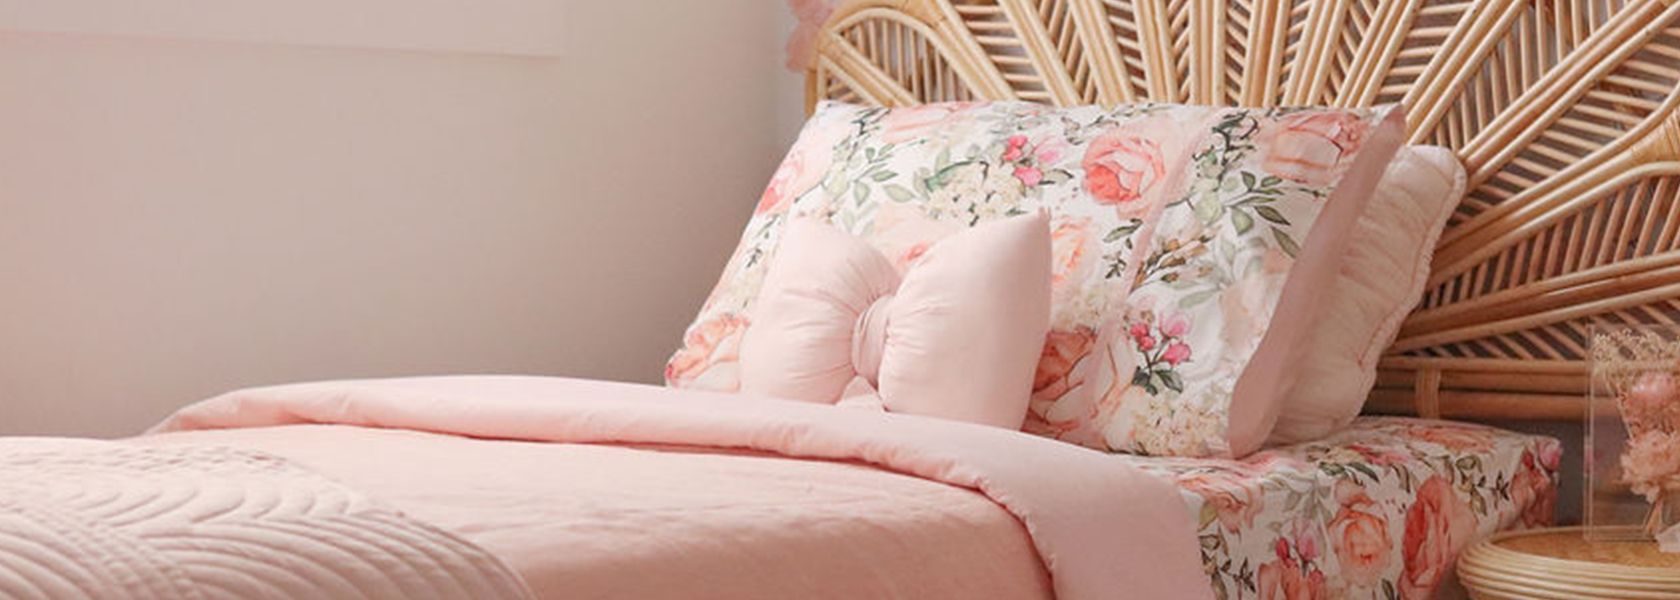 Brianne Bedding and Pink Linen Duvet on a rattan single bed